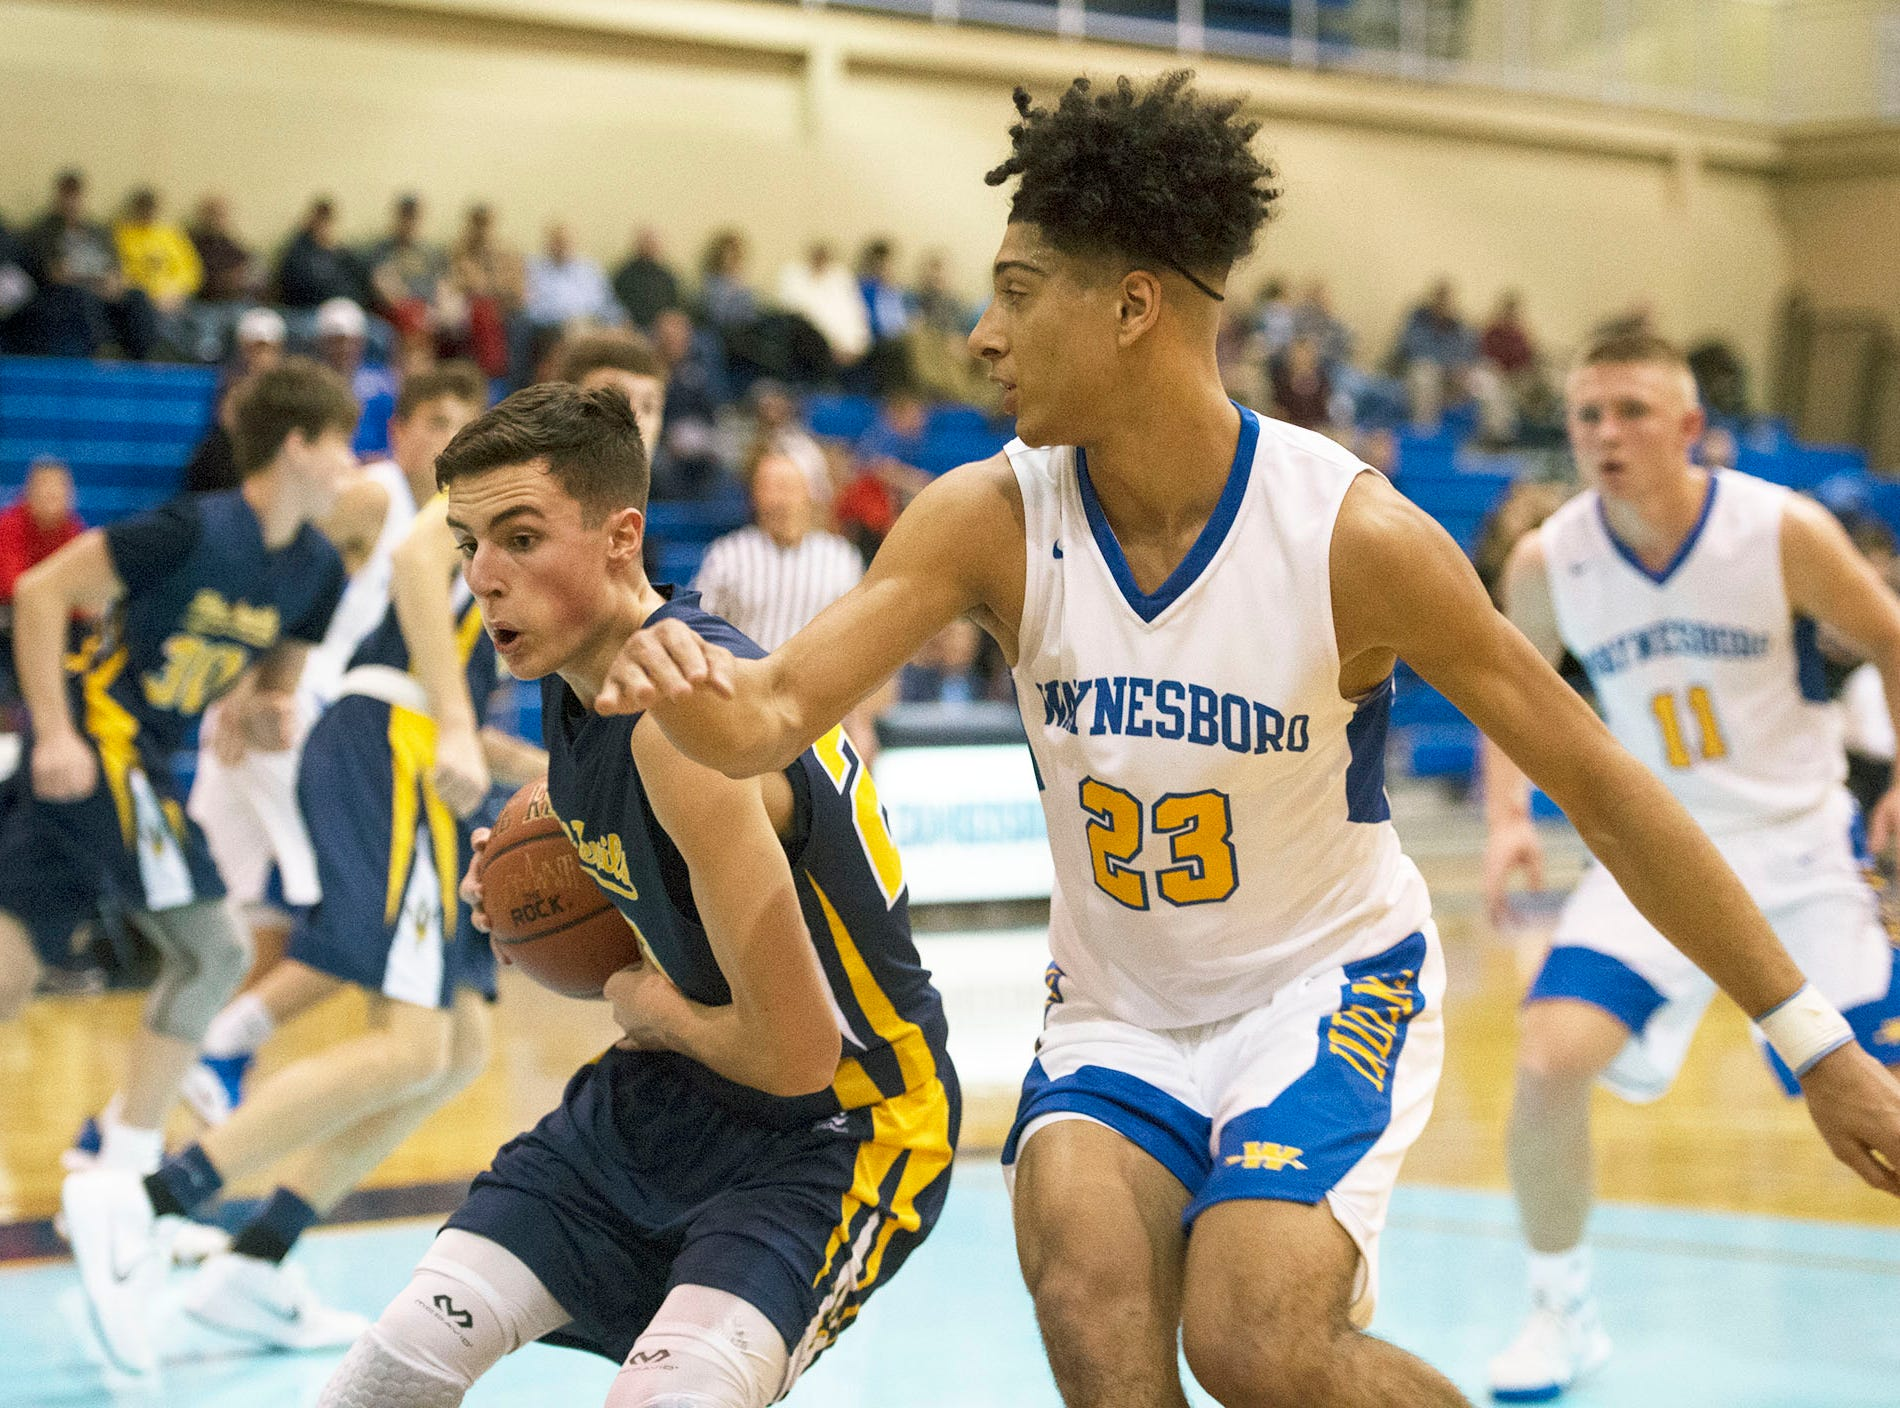 Waynesboro played Greencastle boys during the Franklin County Tip-Off Tournament, Friday, Dec. 7, 2018.